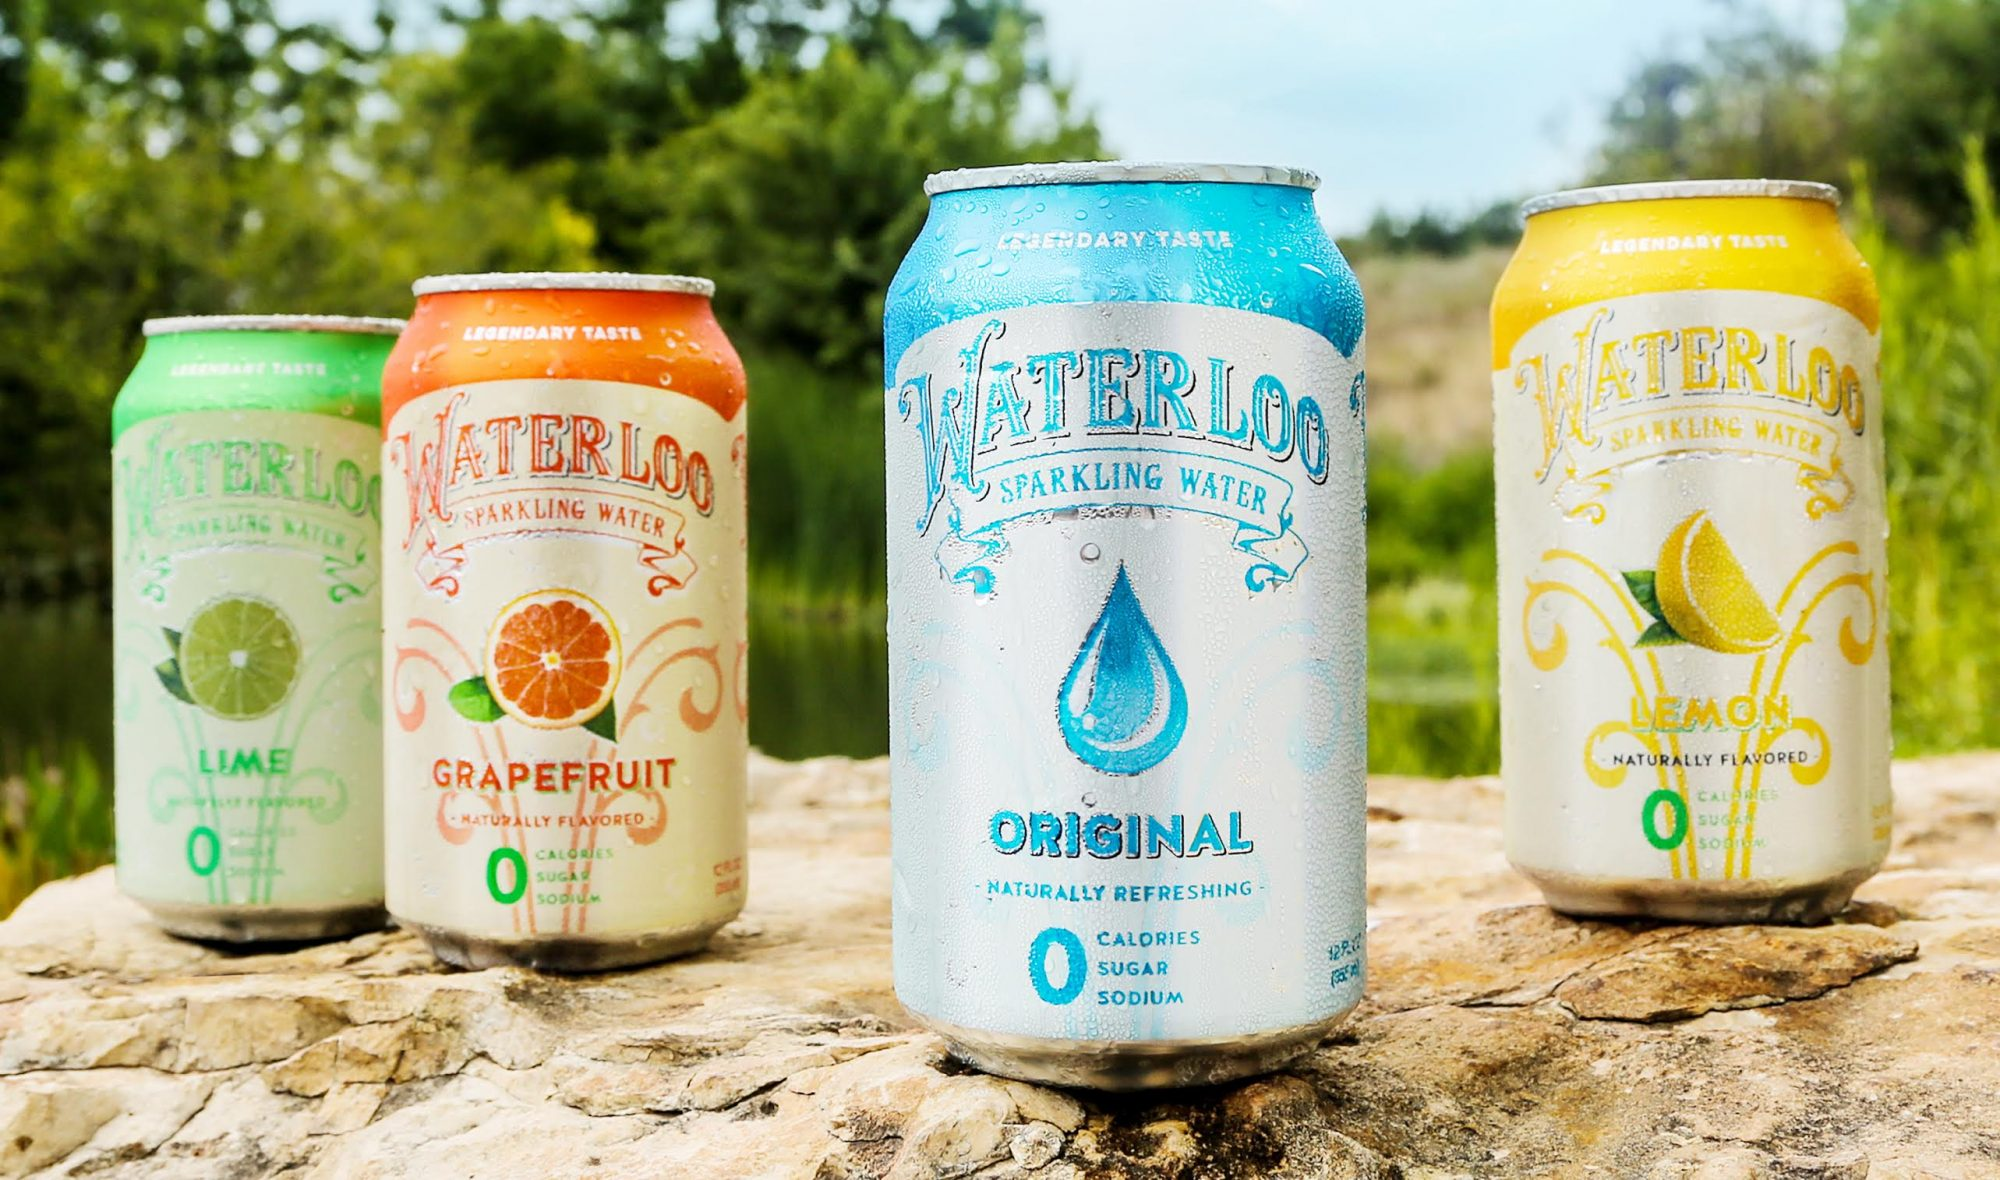 Waterloo Sparkling Water Whole Foods